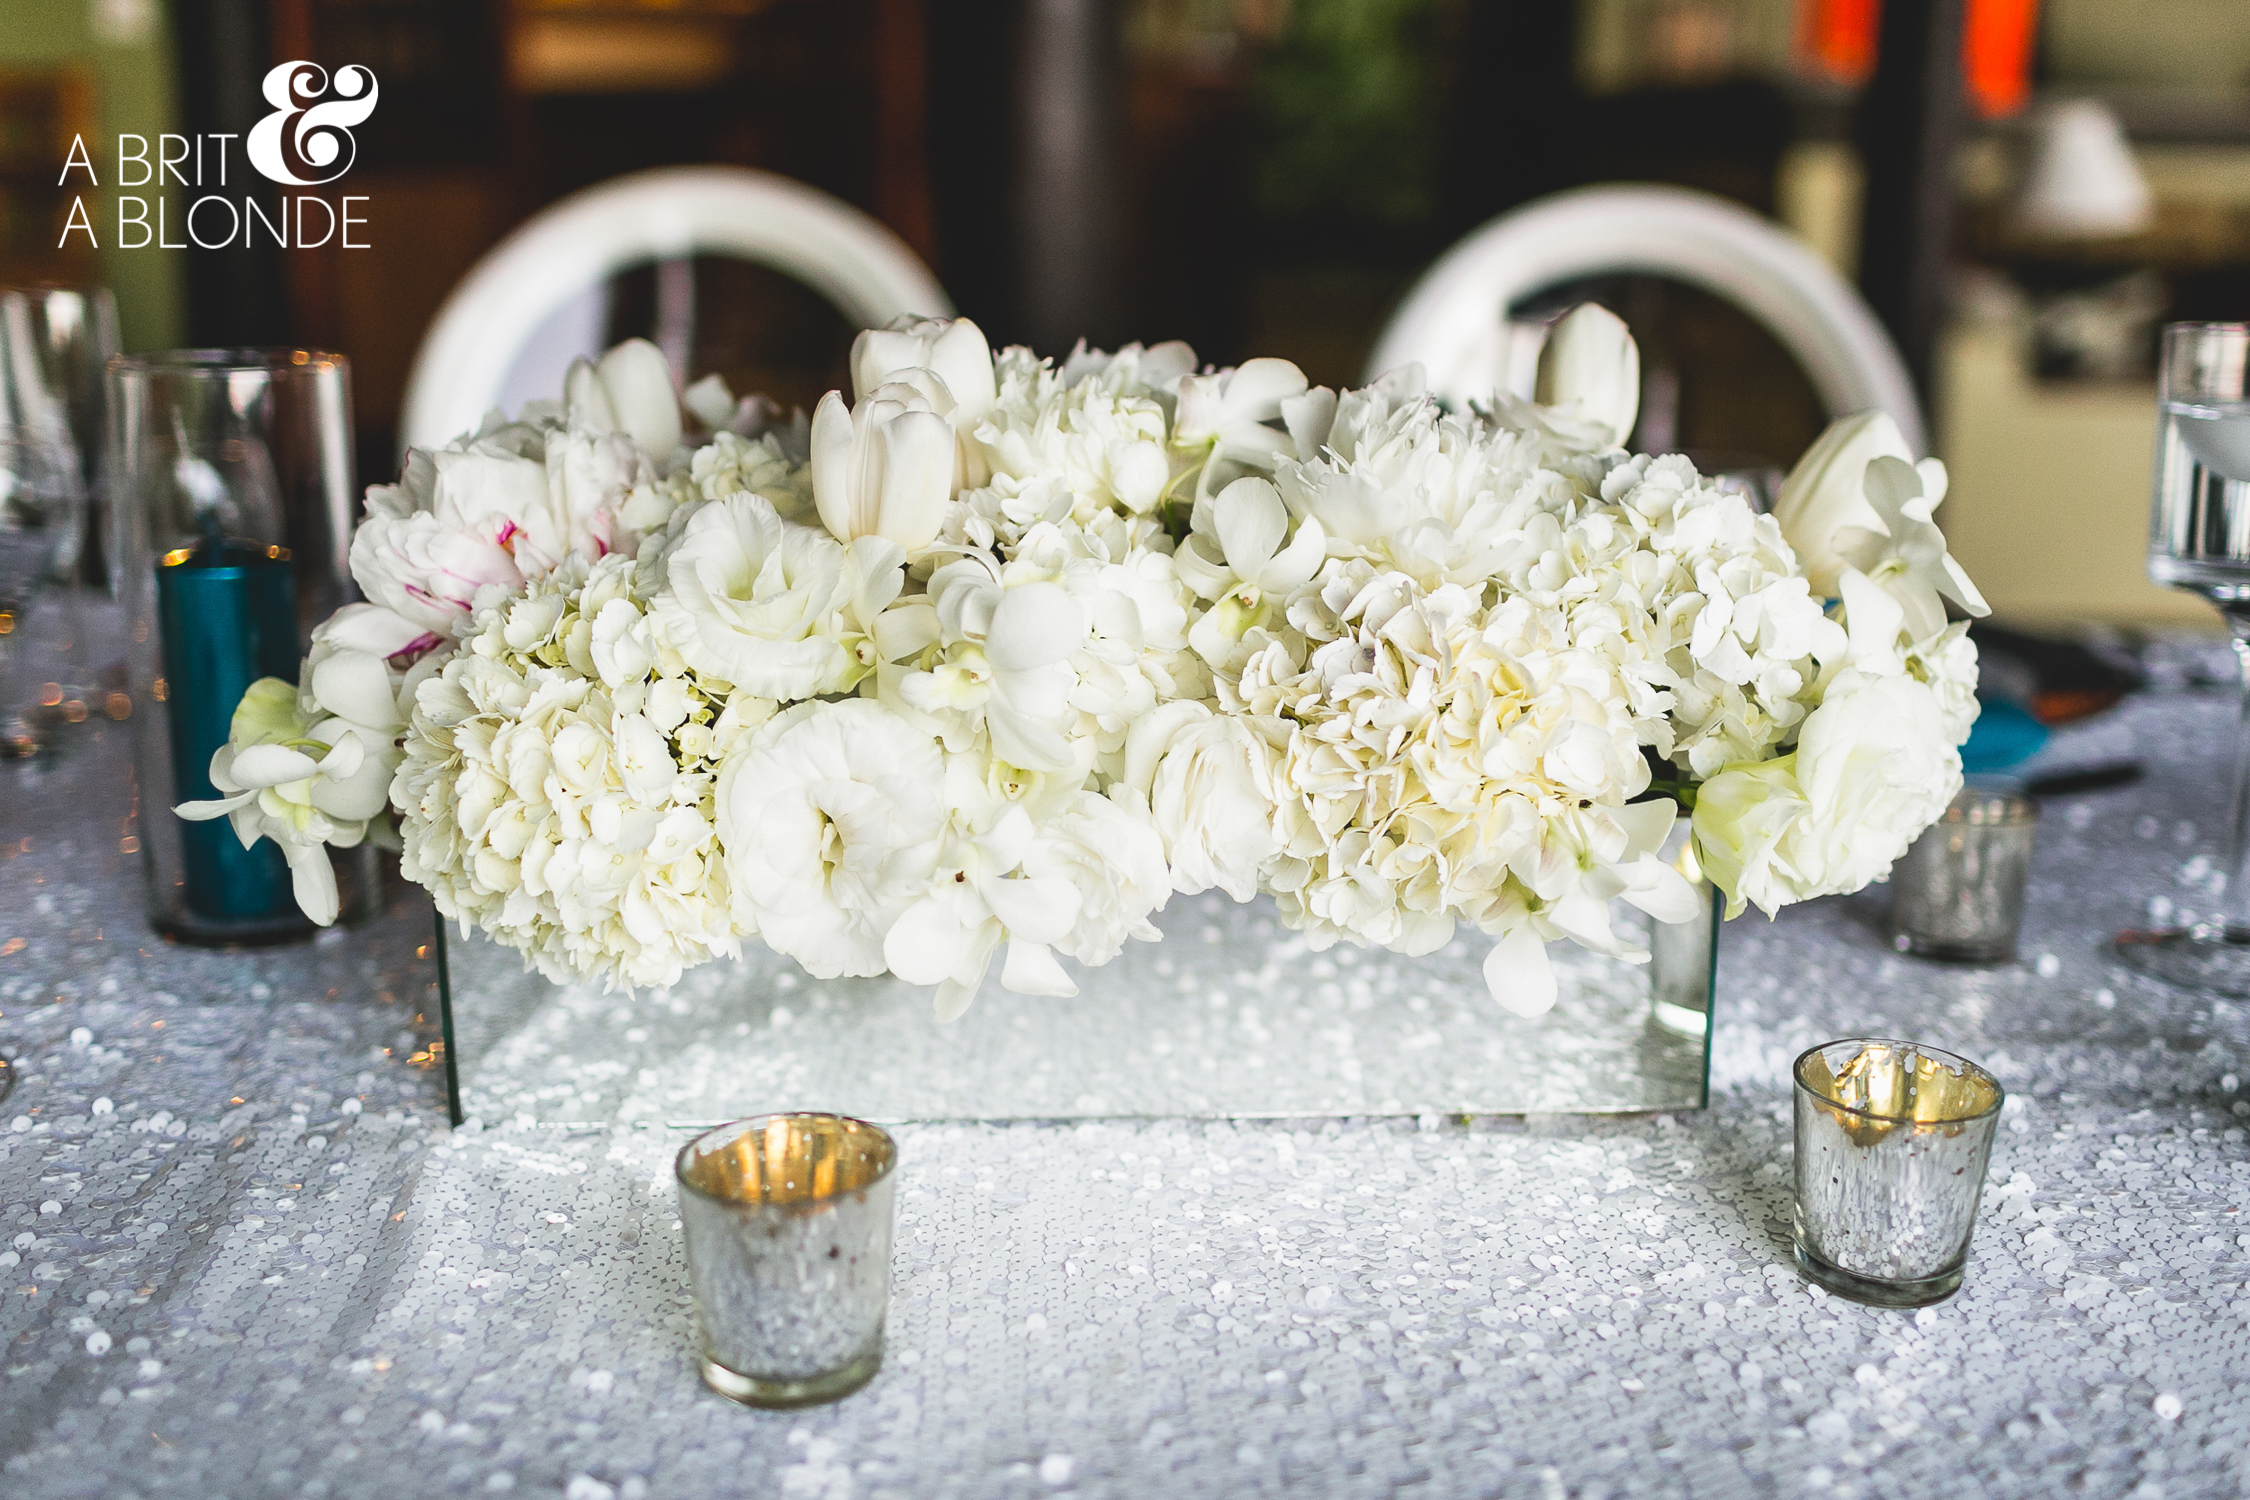 Astounding White Wedding Table Decorations Images Inspirations – Dievoon